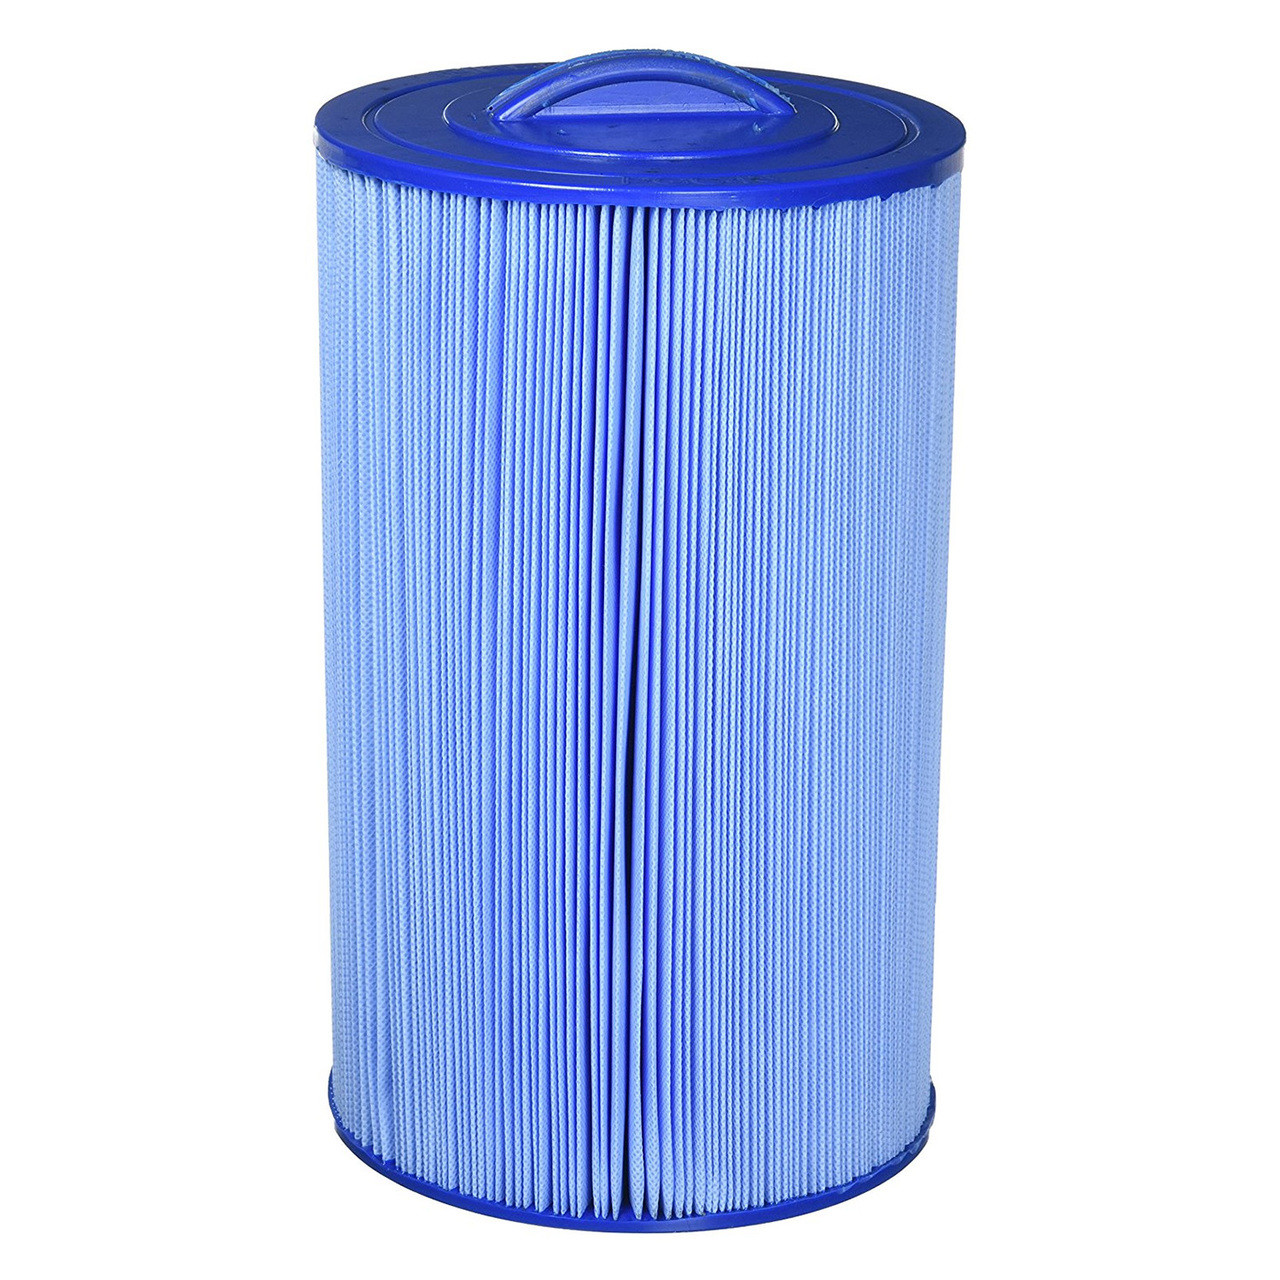 X268523 - PWW35L-M Filter with Microban for Contractor Series 2012 SALE!